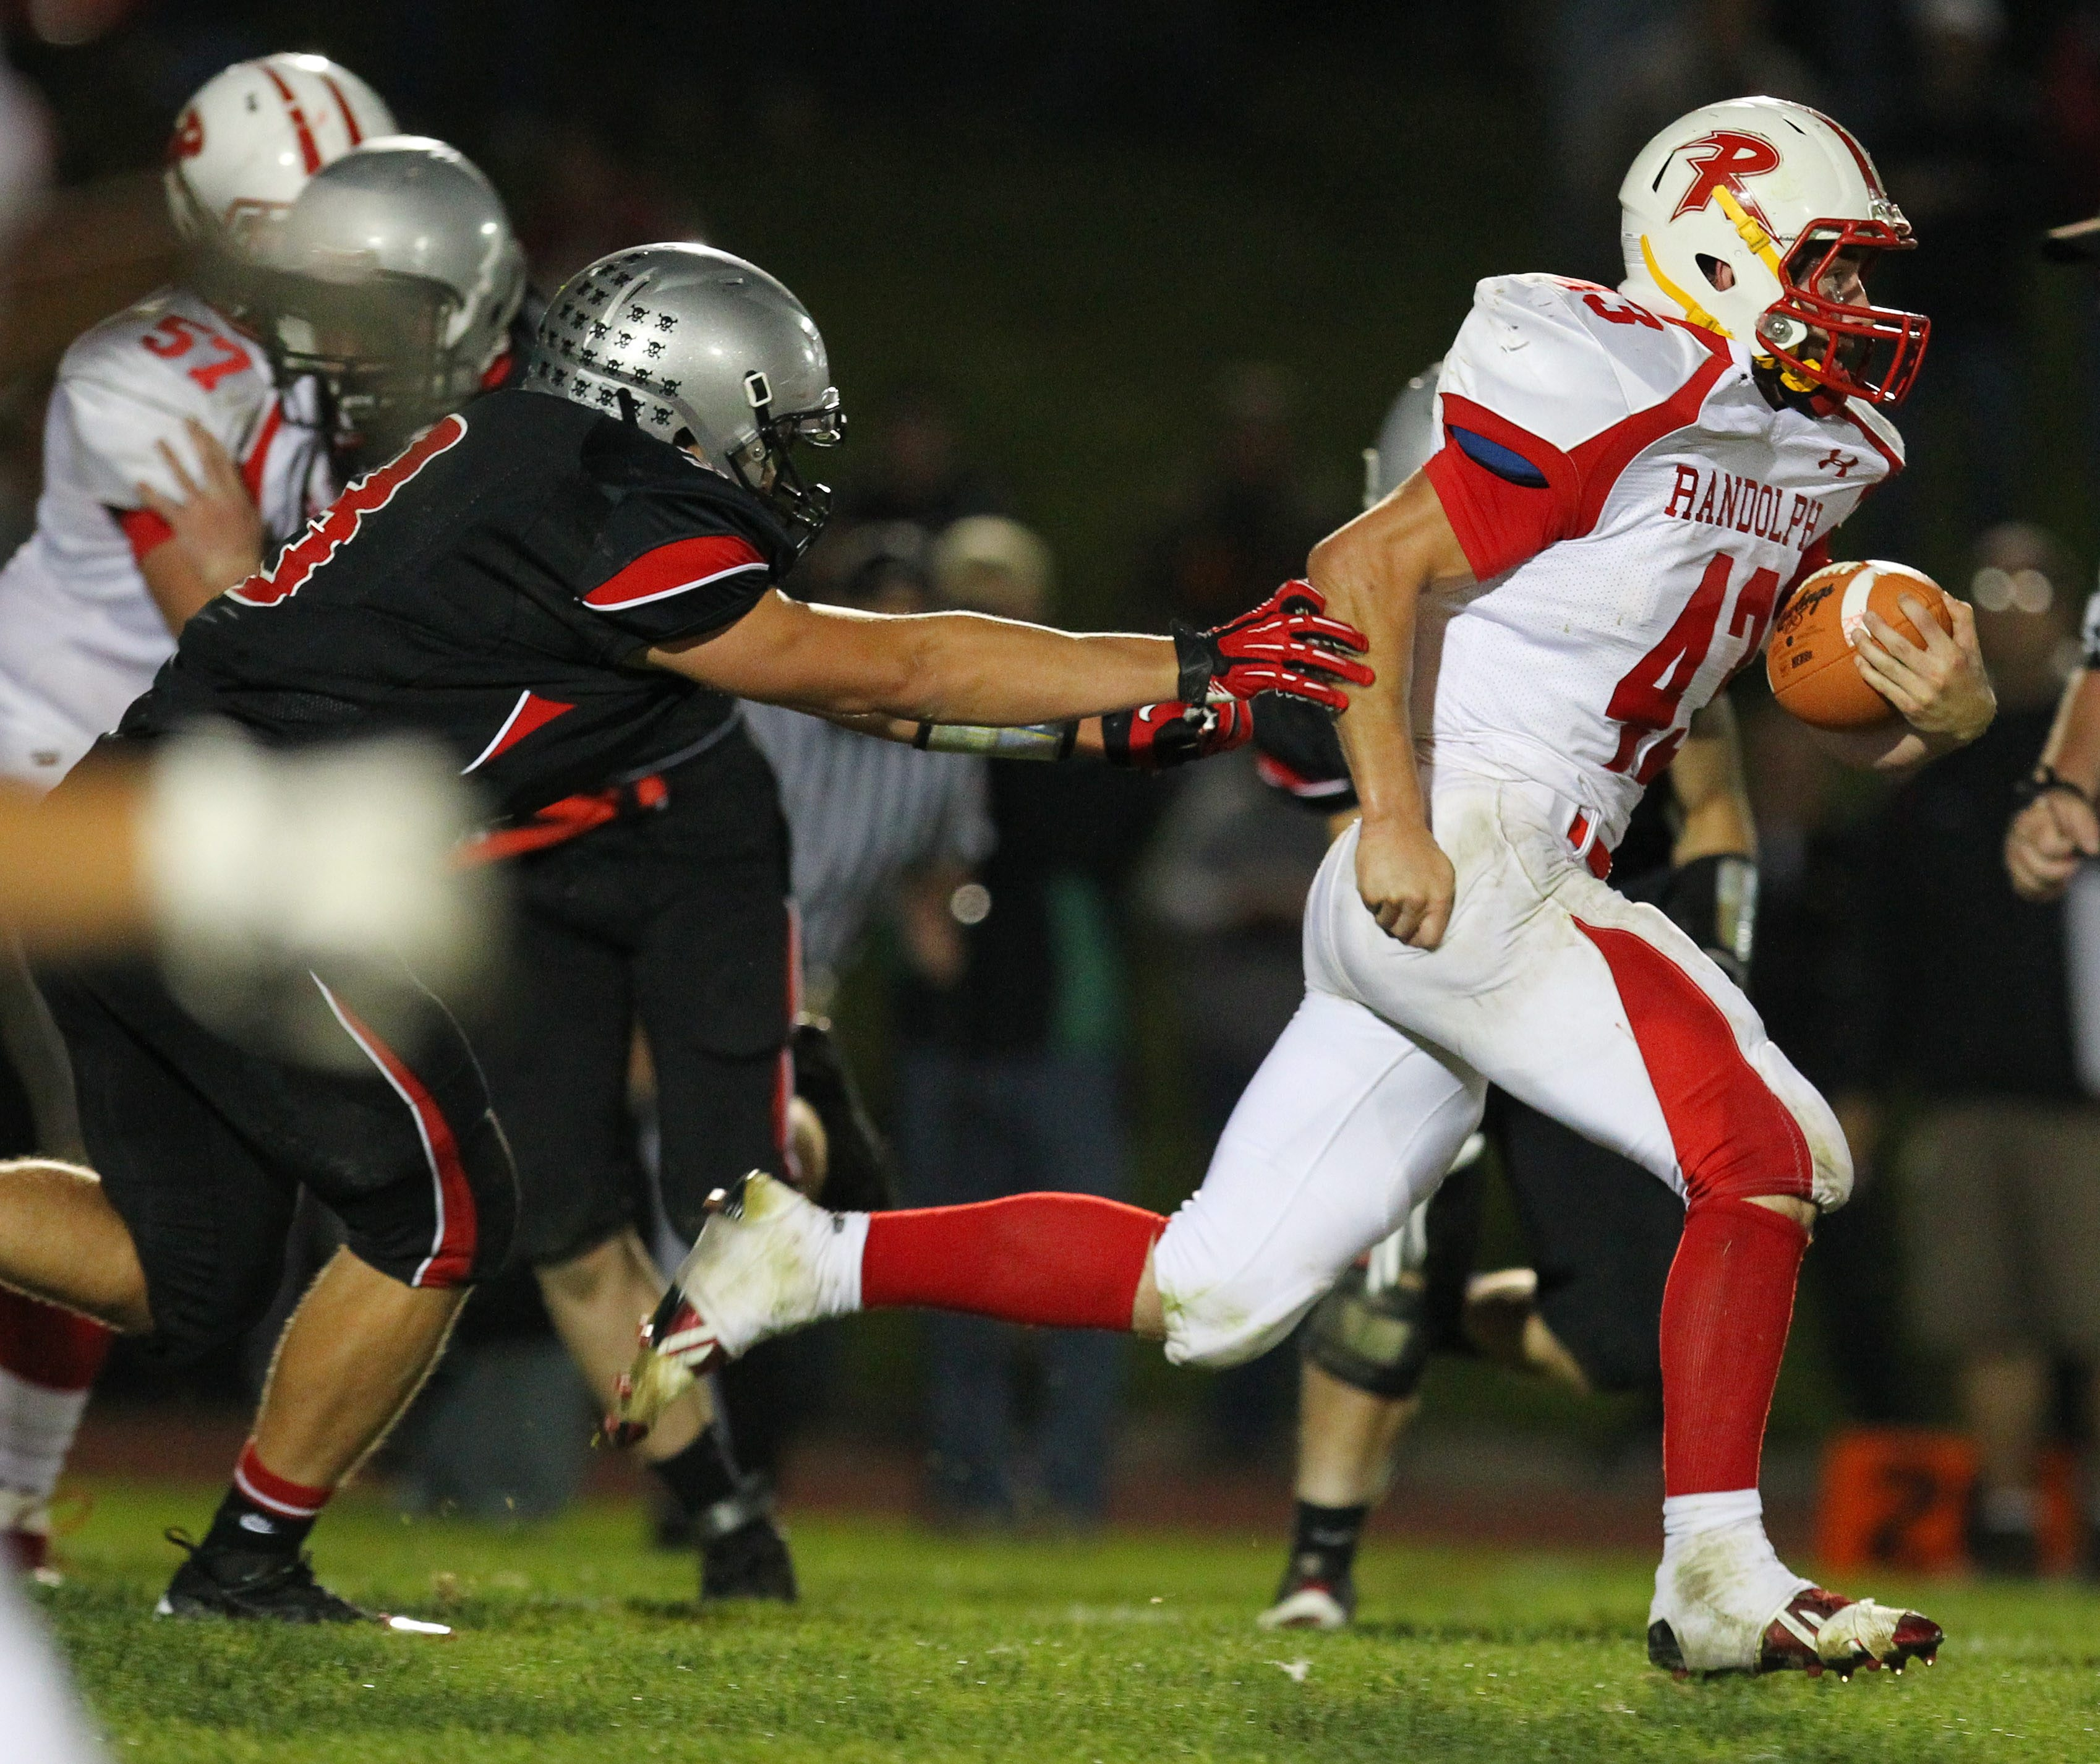 Randolph's Chris Doubek bursts through the Maple Grove/Chautauqua Lake line for one of his many big gainers during Friday's Class D game. Doubek finished with 337 yards in the 35-7 win.